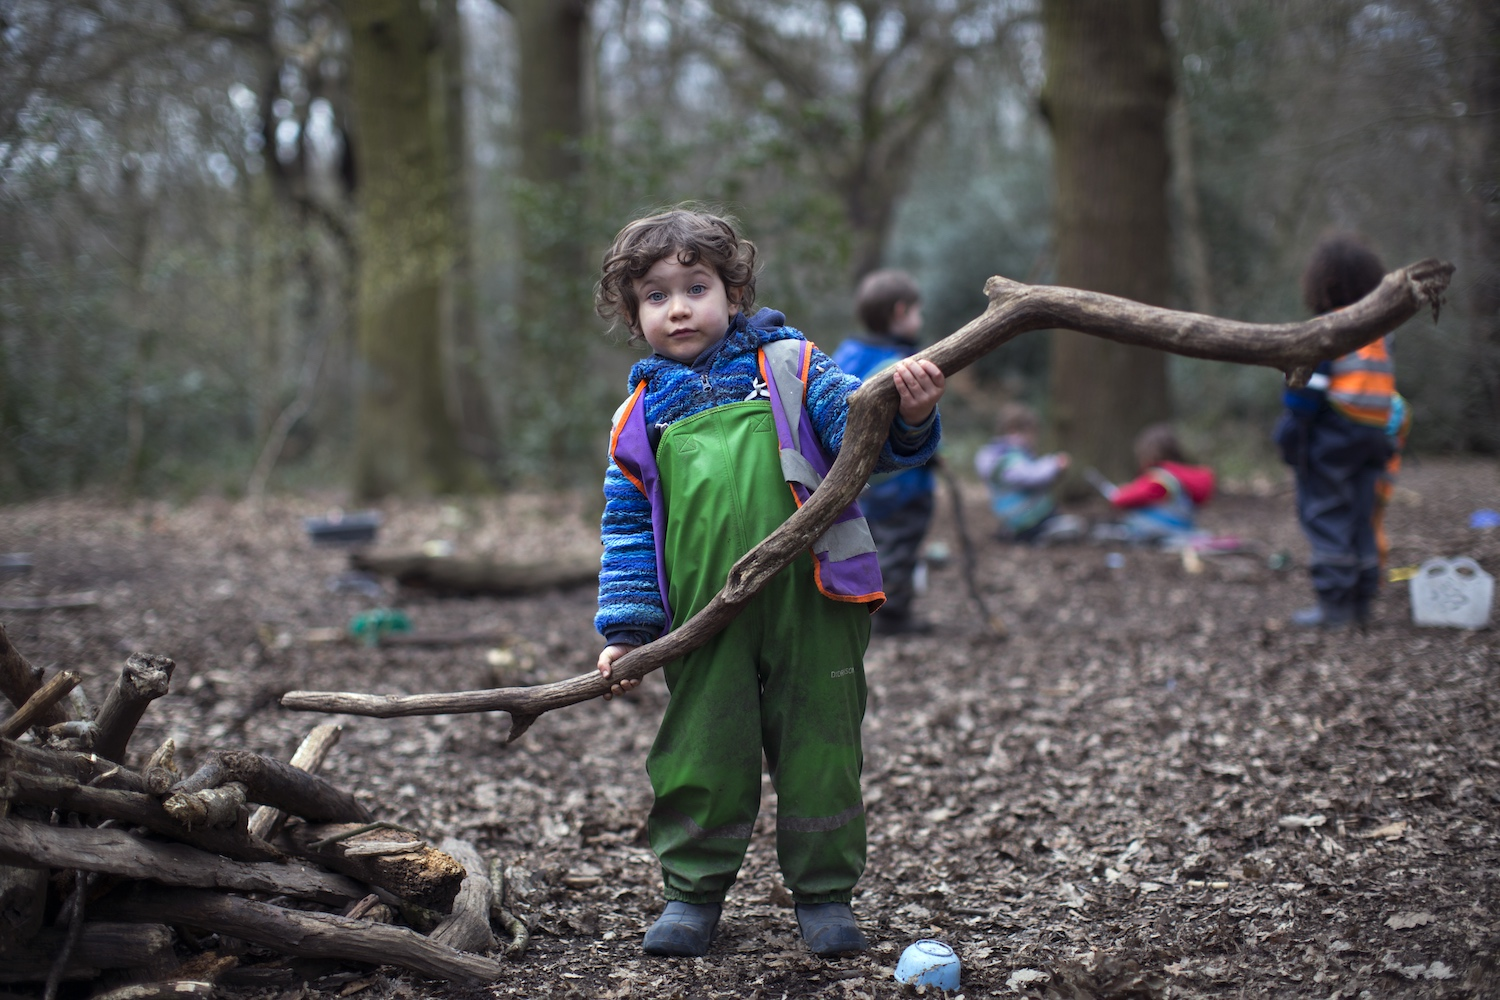 Learning outdoors: growing explorers, not robots